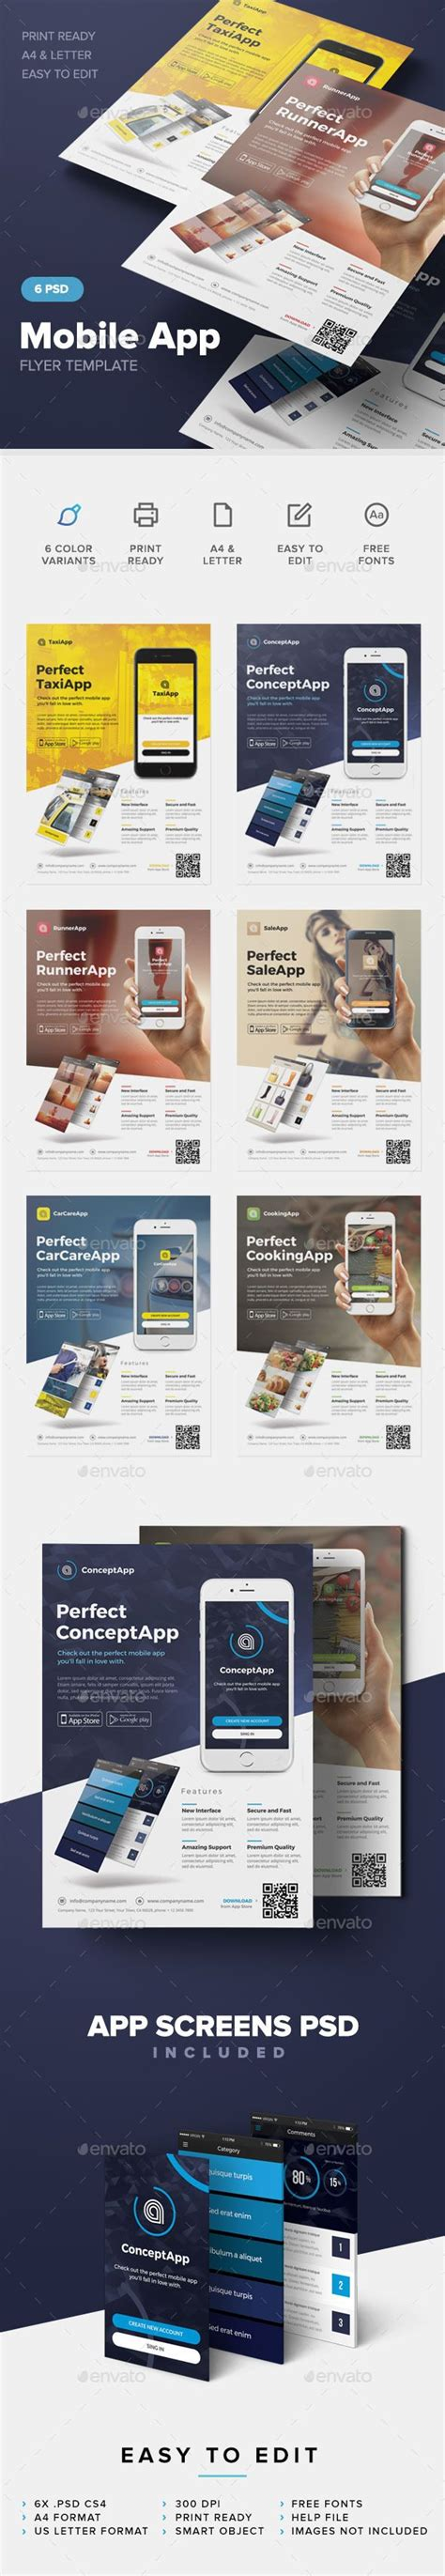 flyer design requirements 375 best images about portfolio layout on pinterest